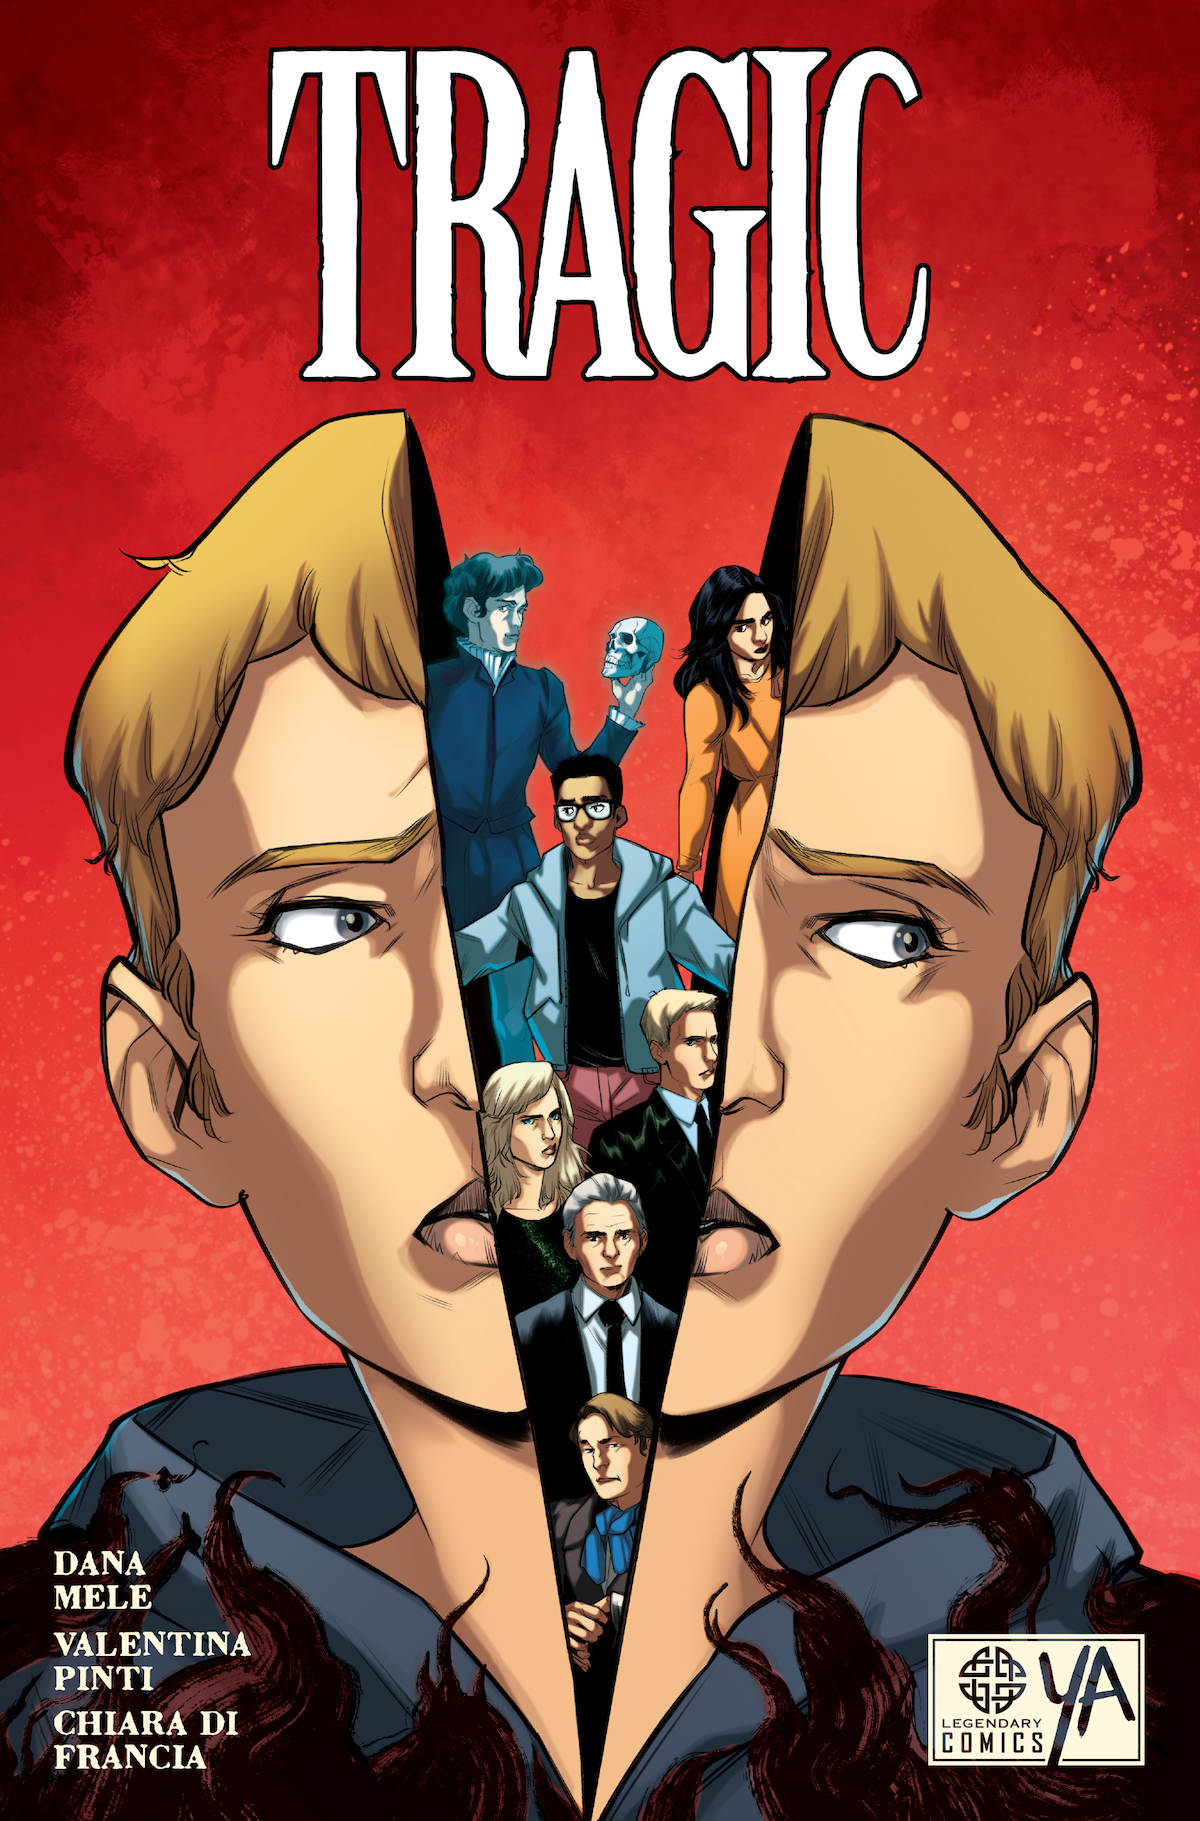 The full front cover of the graphic novel Tragic, which shows a character's head split apart with smaller characters inside